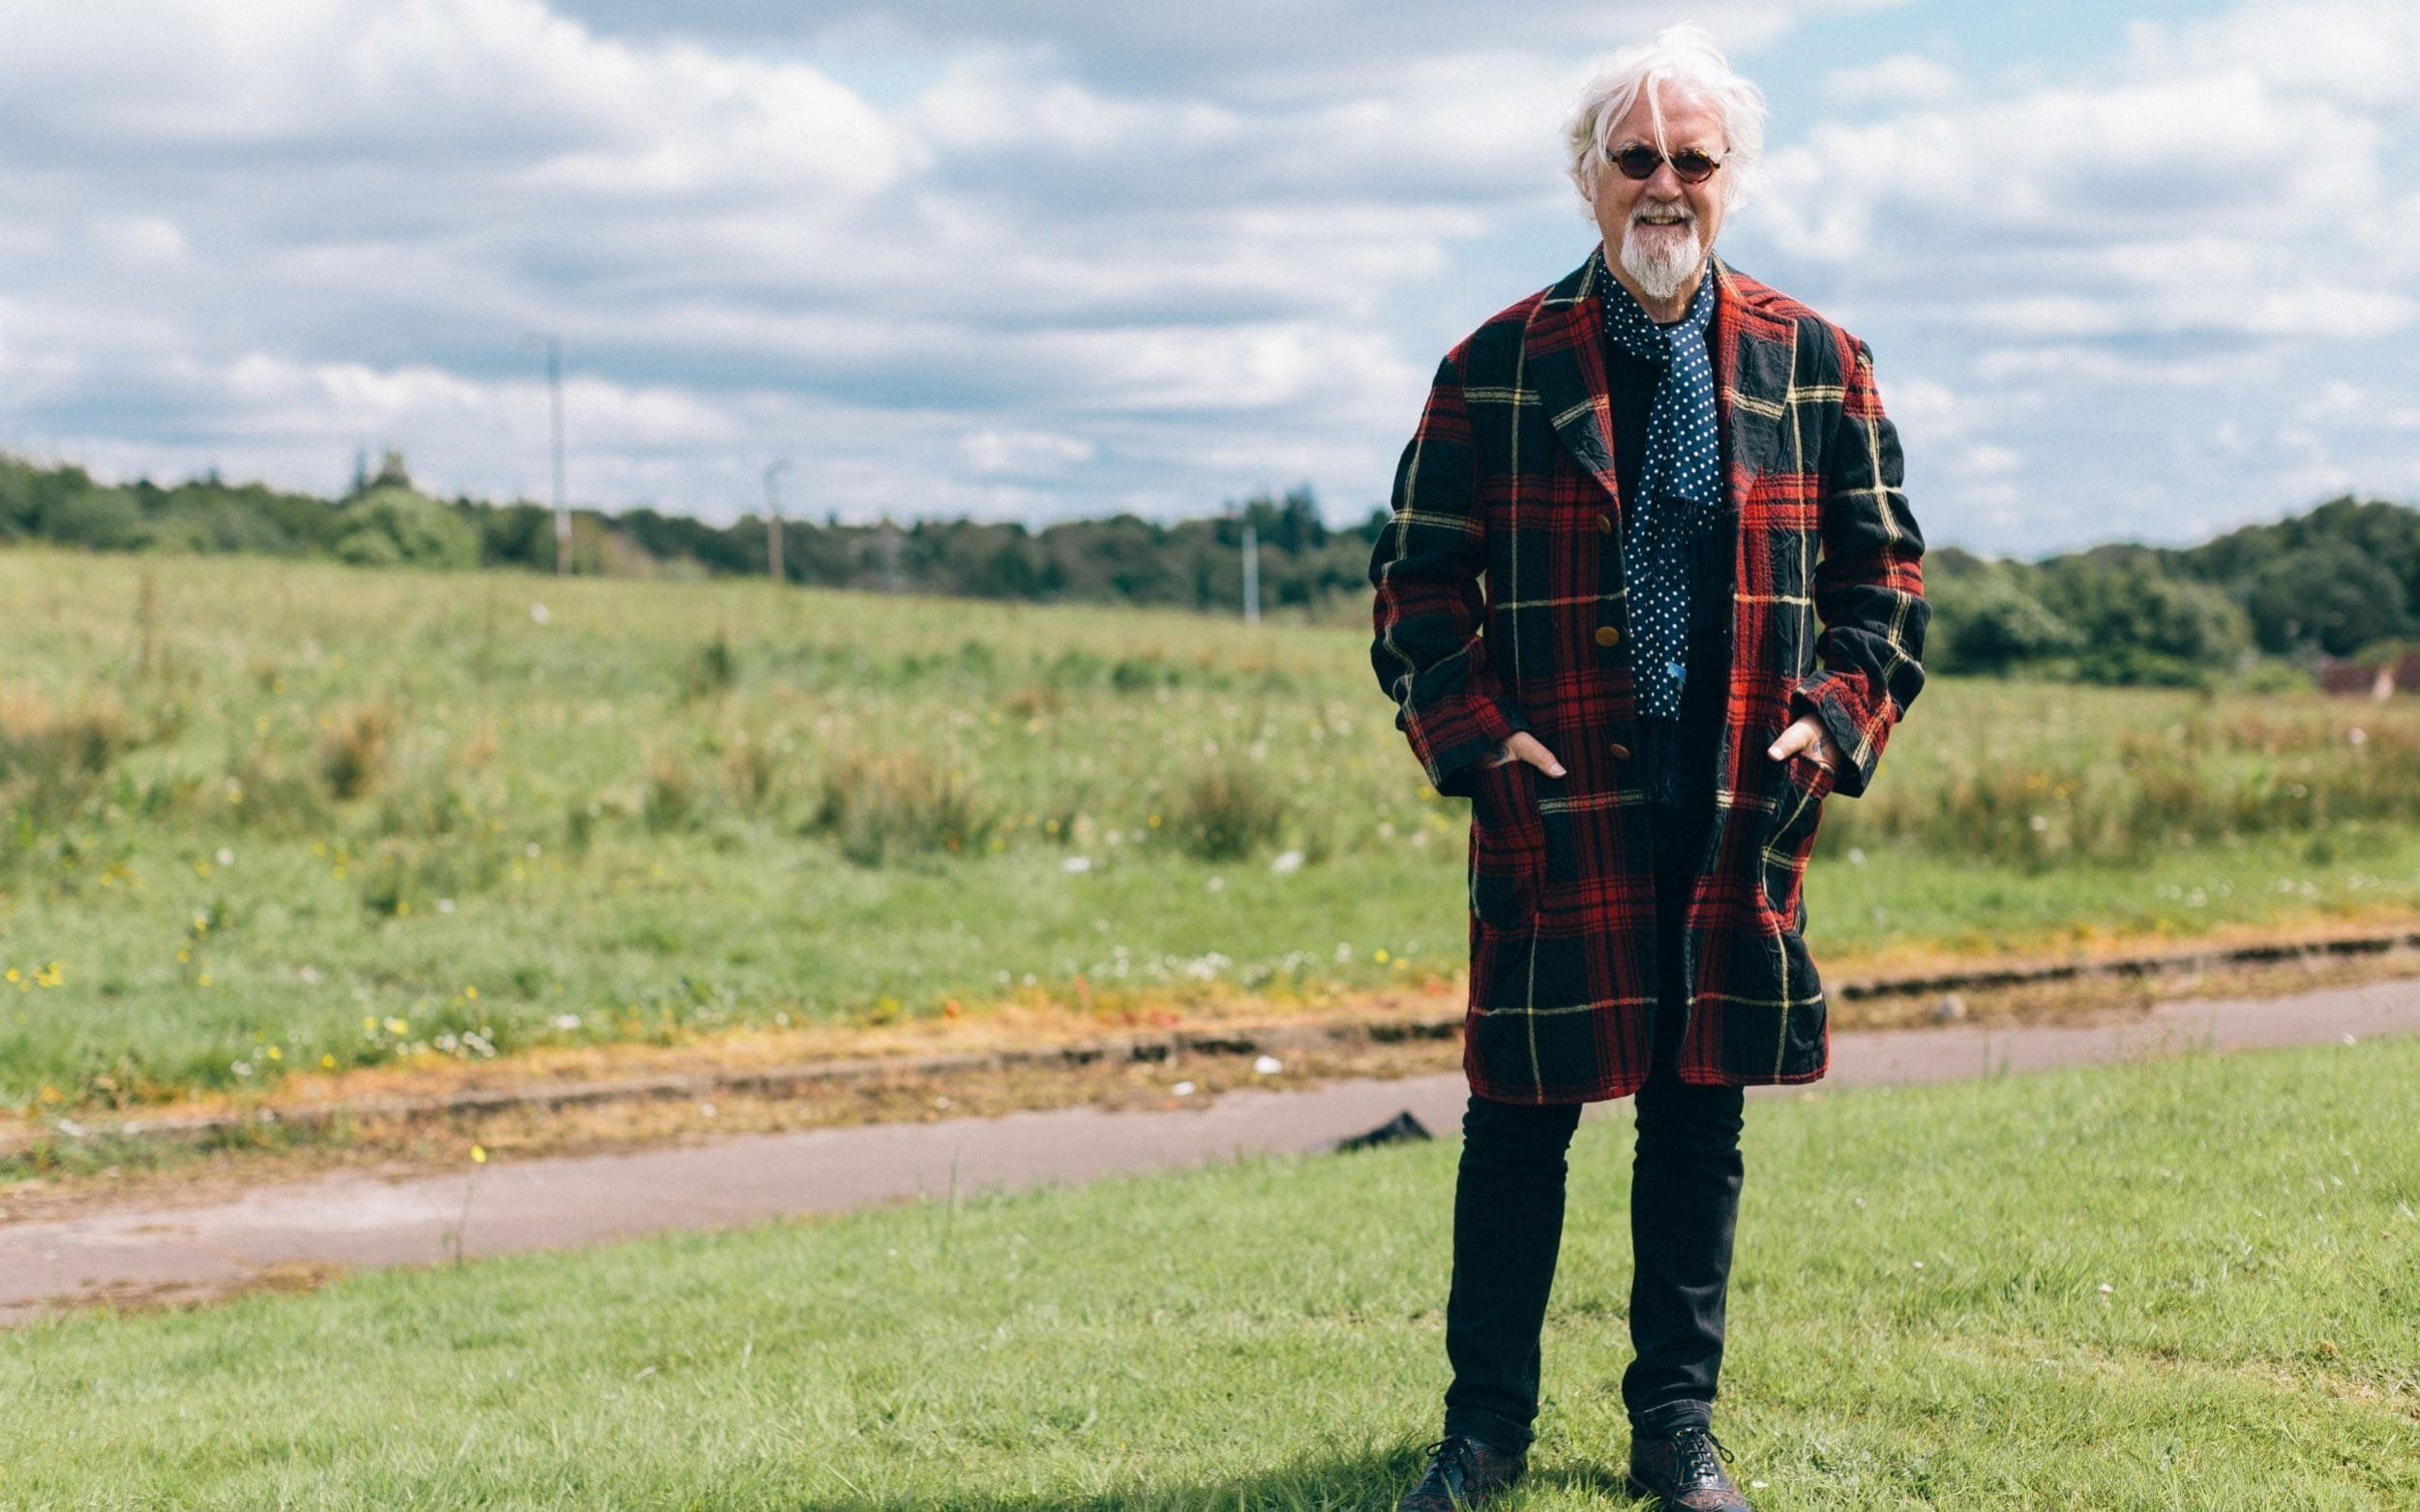 Sir Billy Connolly Says He's 'Near The End' Of His Life But 'Doesn't Fear